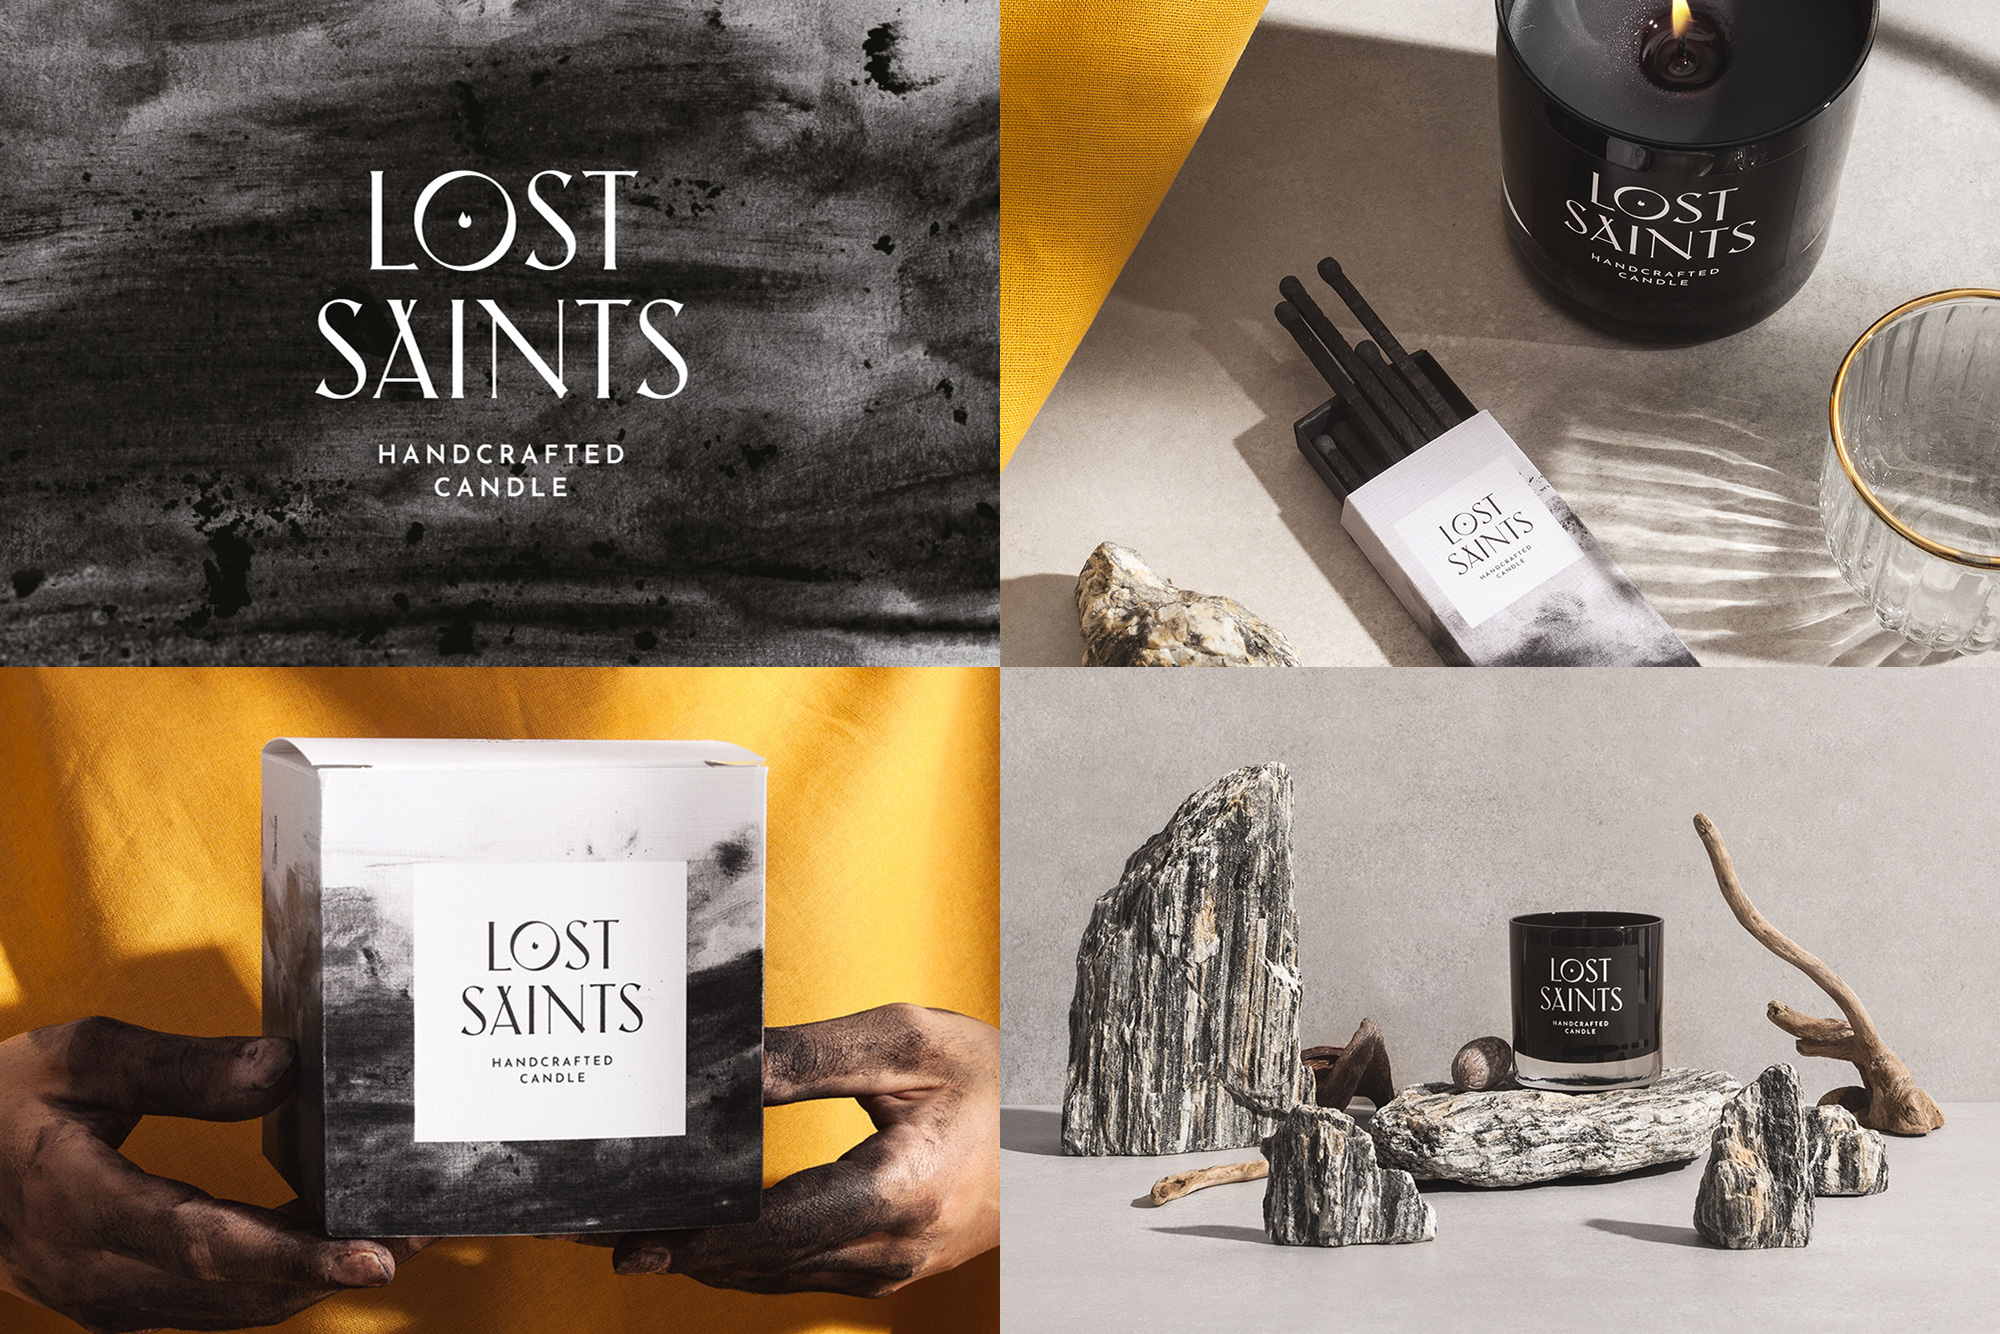 Lost Saints by Unifikat Design Studio